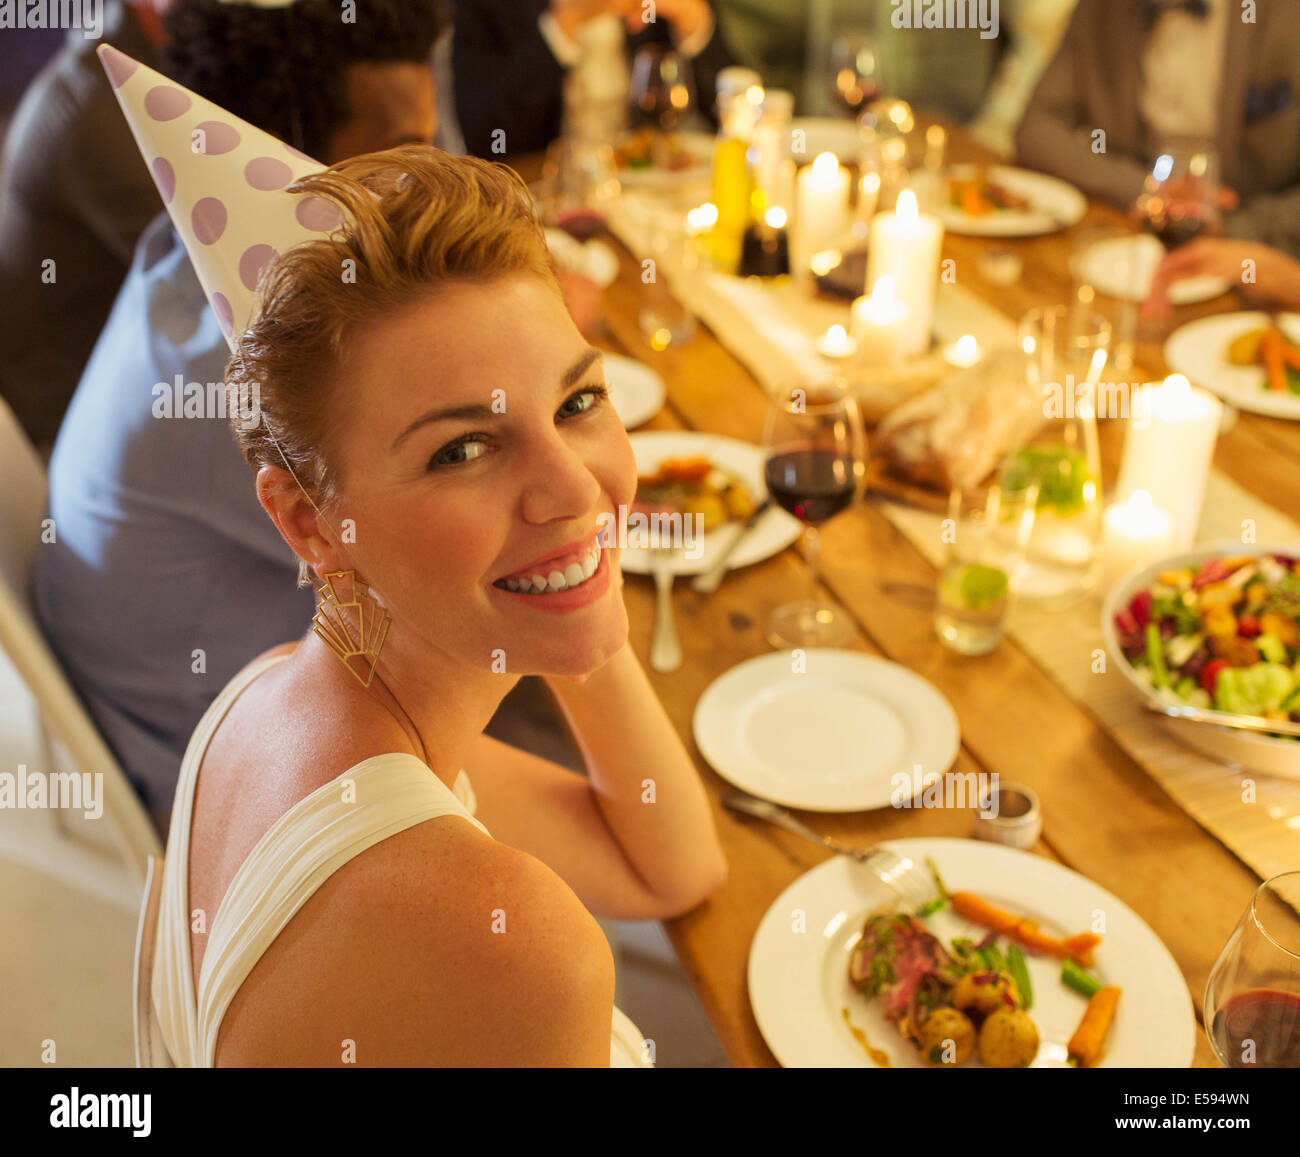 Woman smiling at birthday party - Stock Image